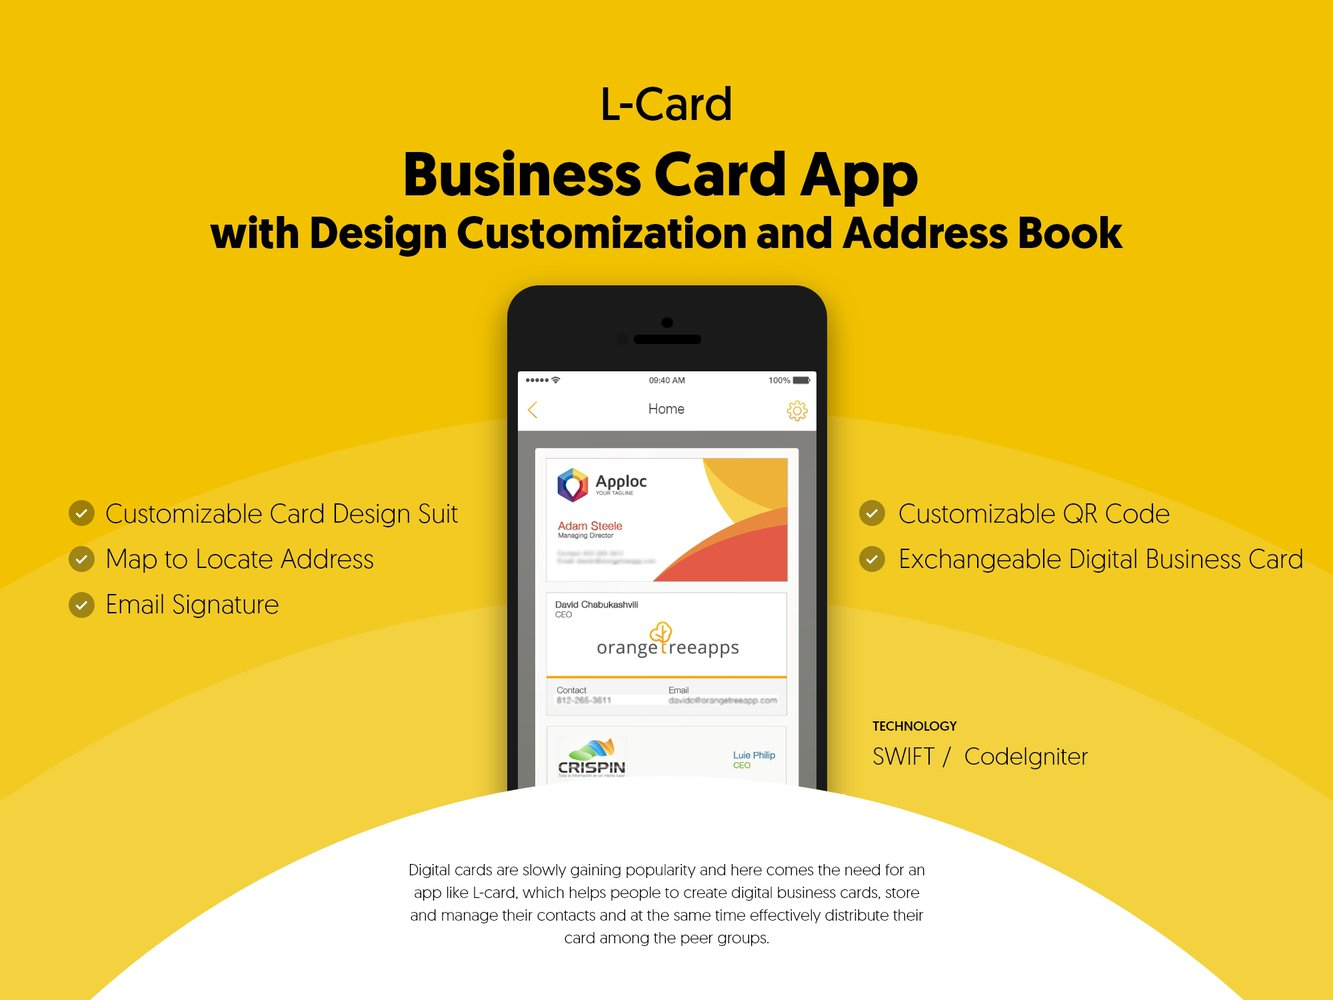 Business Card App with Design Customization and Address Book